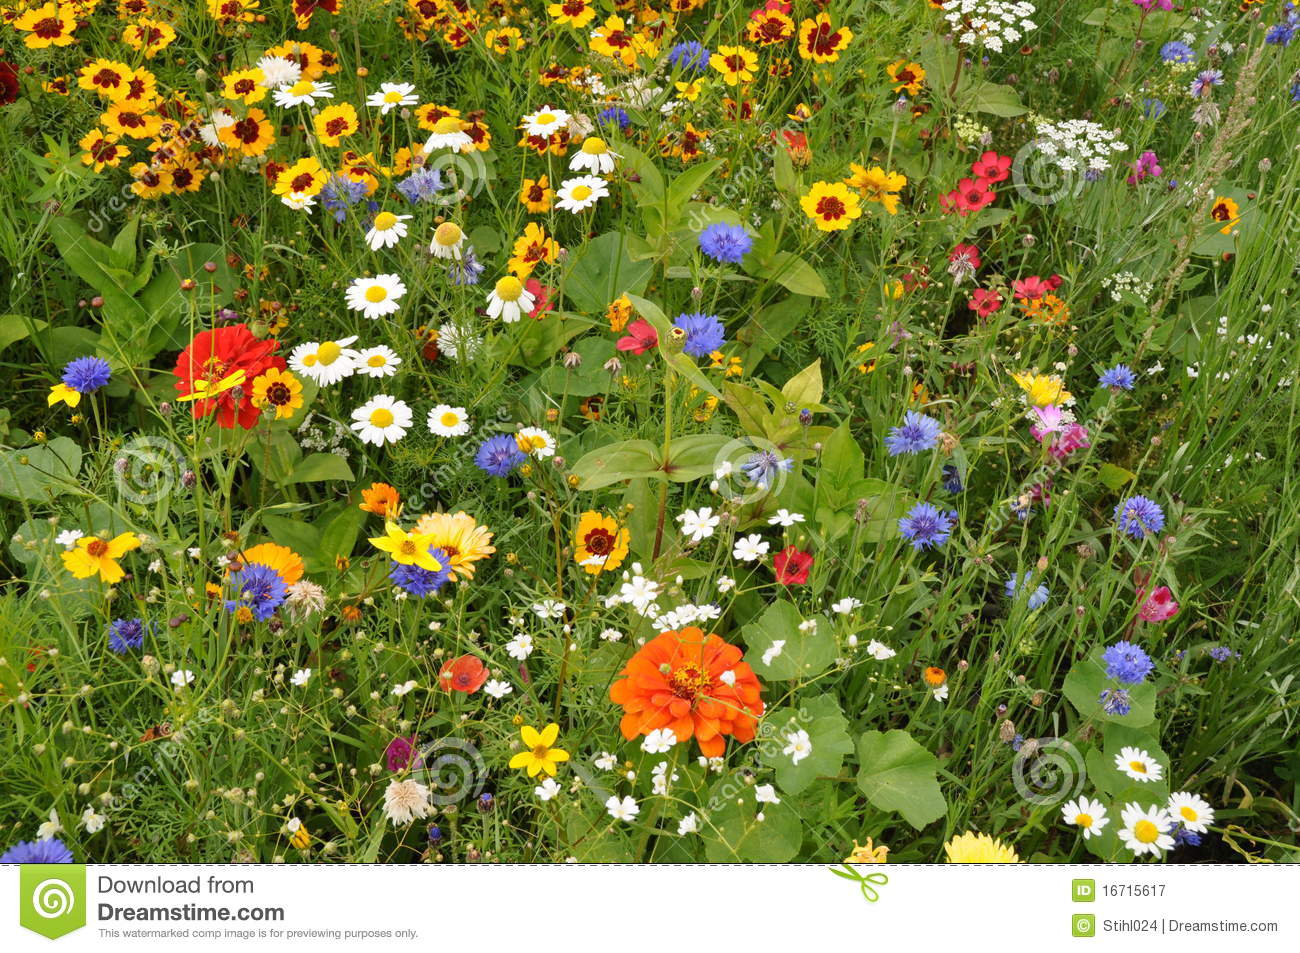 Fall Wallpaper Drawing Meadow With Summer Flowers Royalty Free Stock Photography